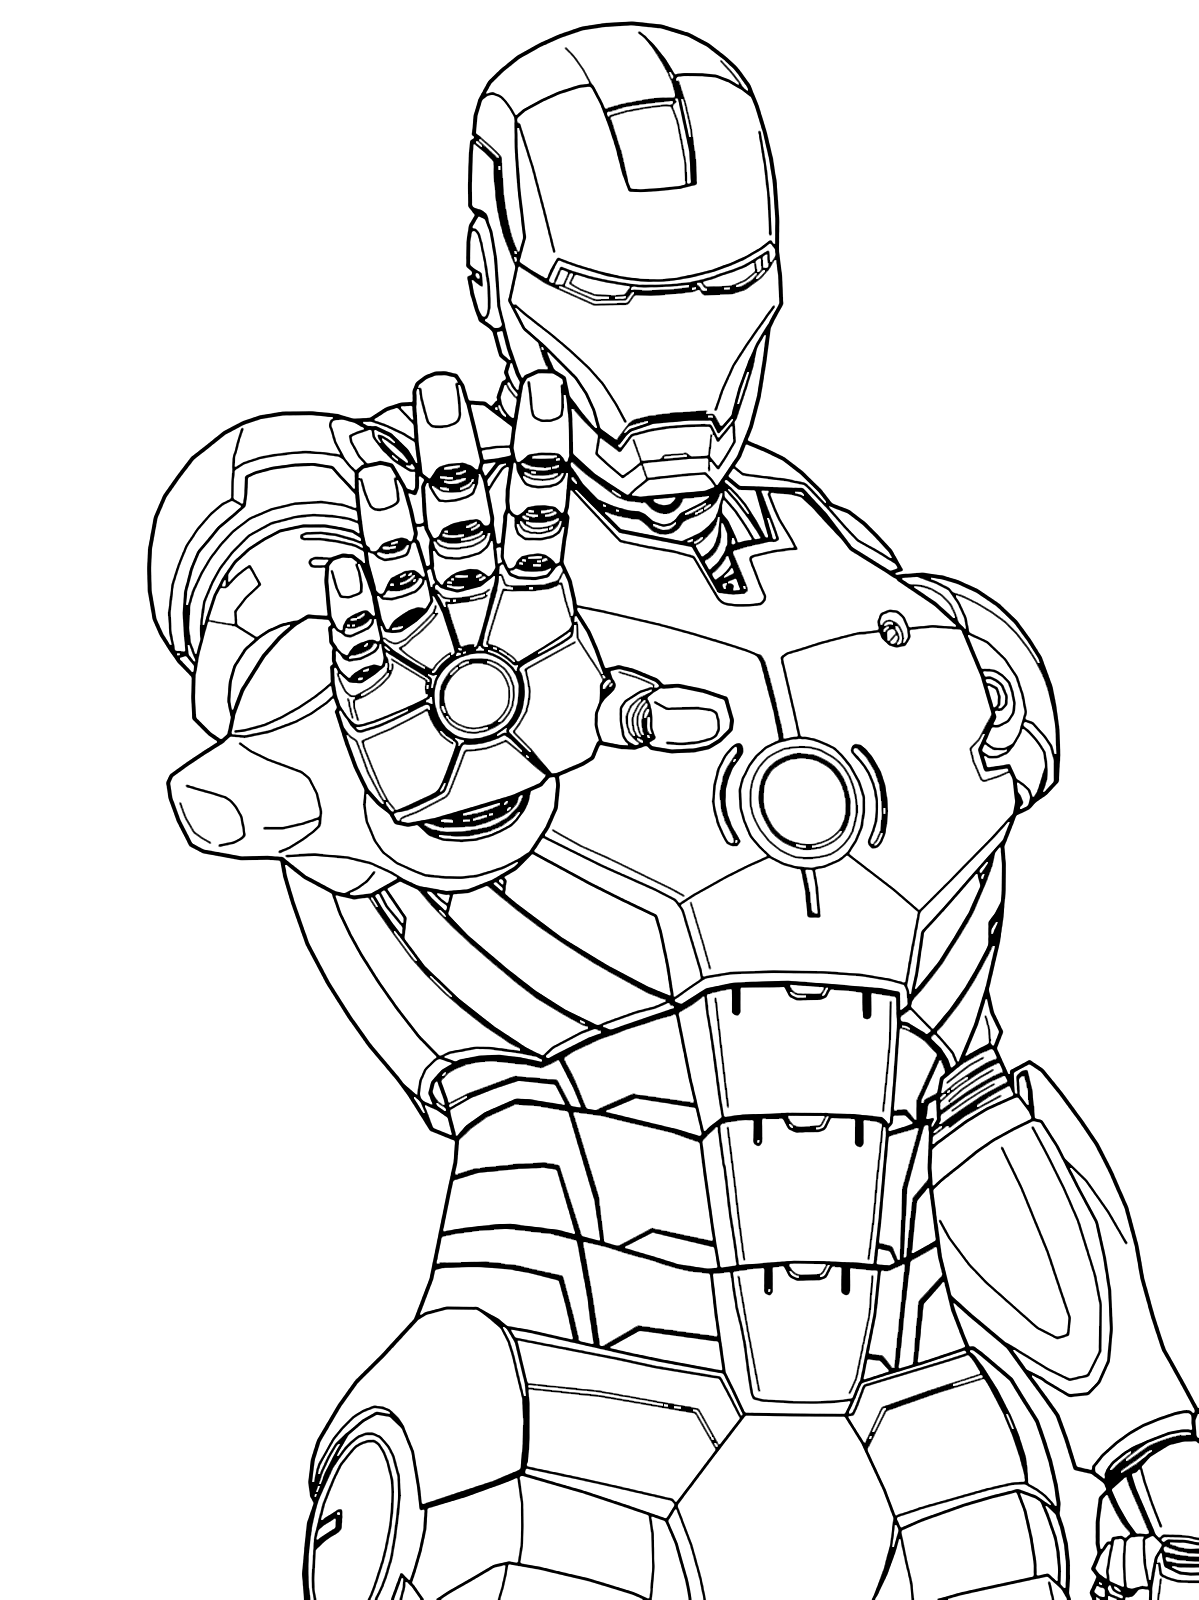 Carnage Coloring Pages To Print Wiring Wiring Diagram Images